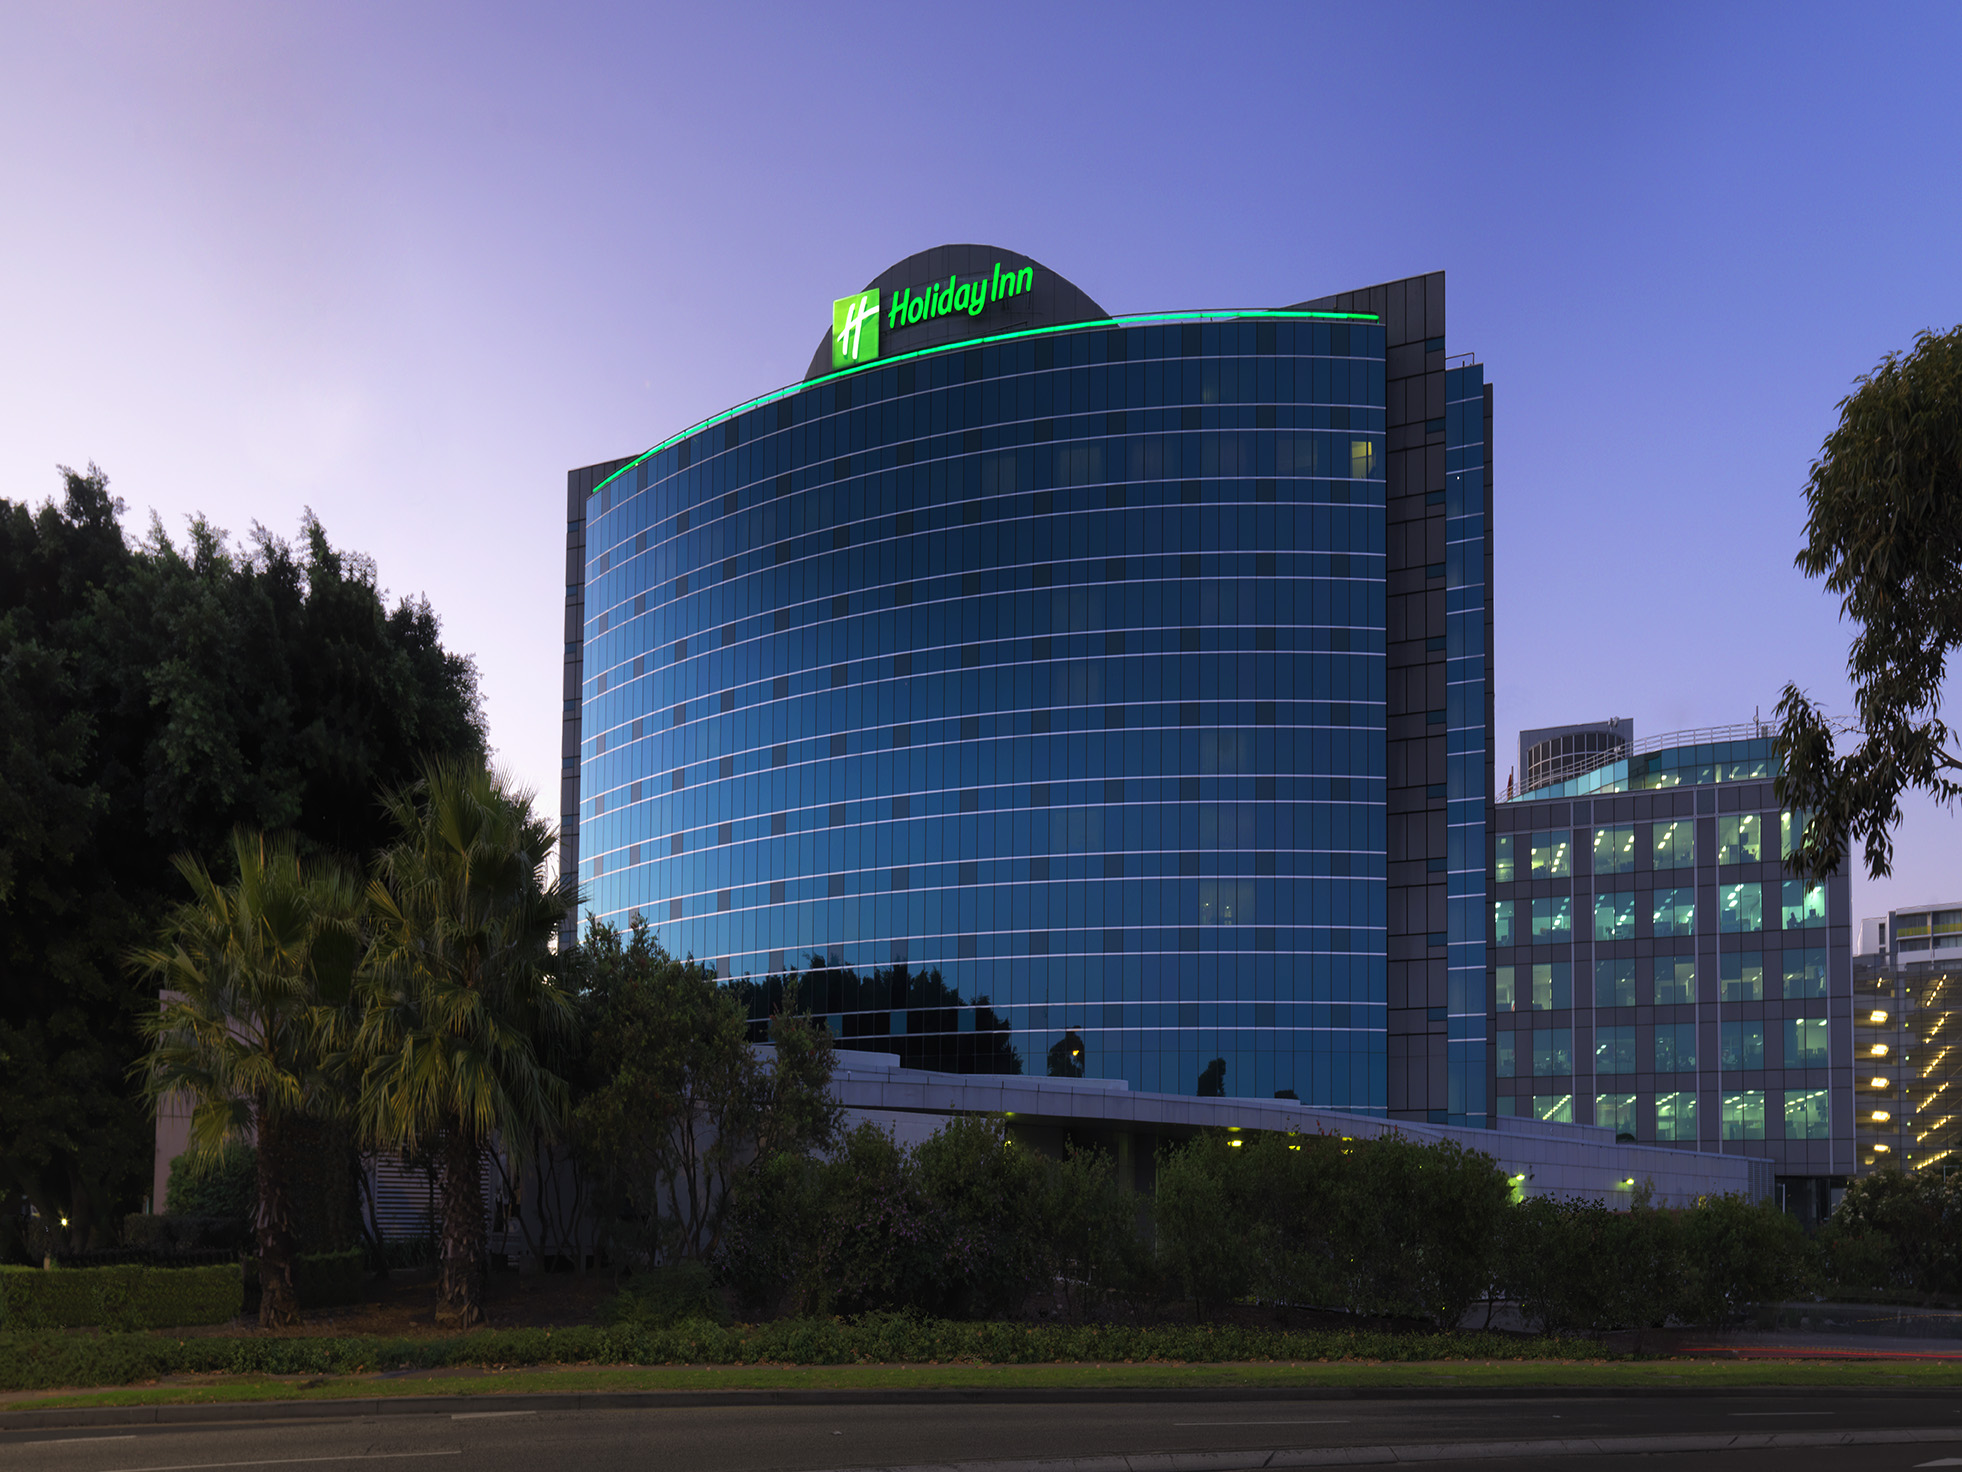 Mercure Hotel Sydney Airport 200 Bed Extension Proposed For Holiday Inn Sydney Airport